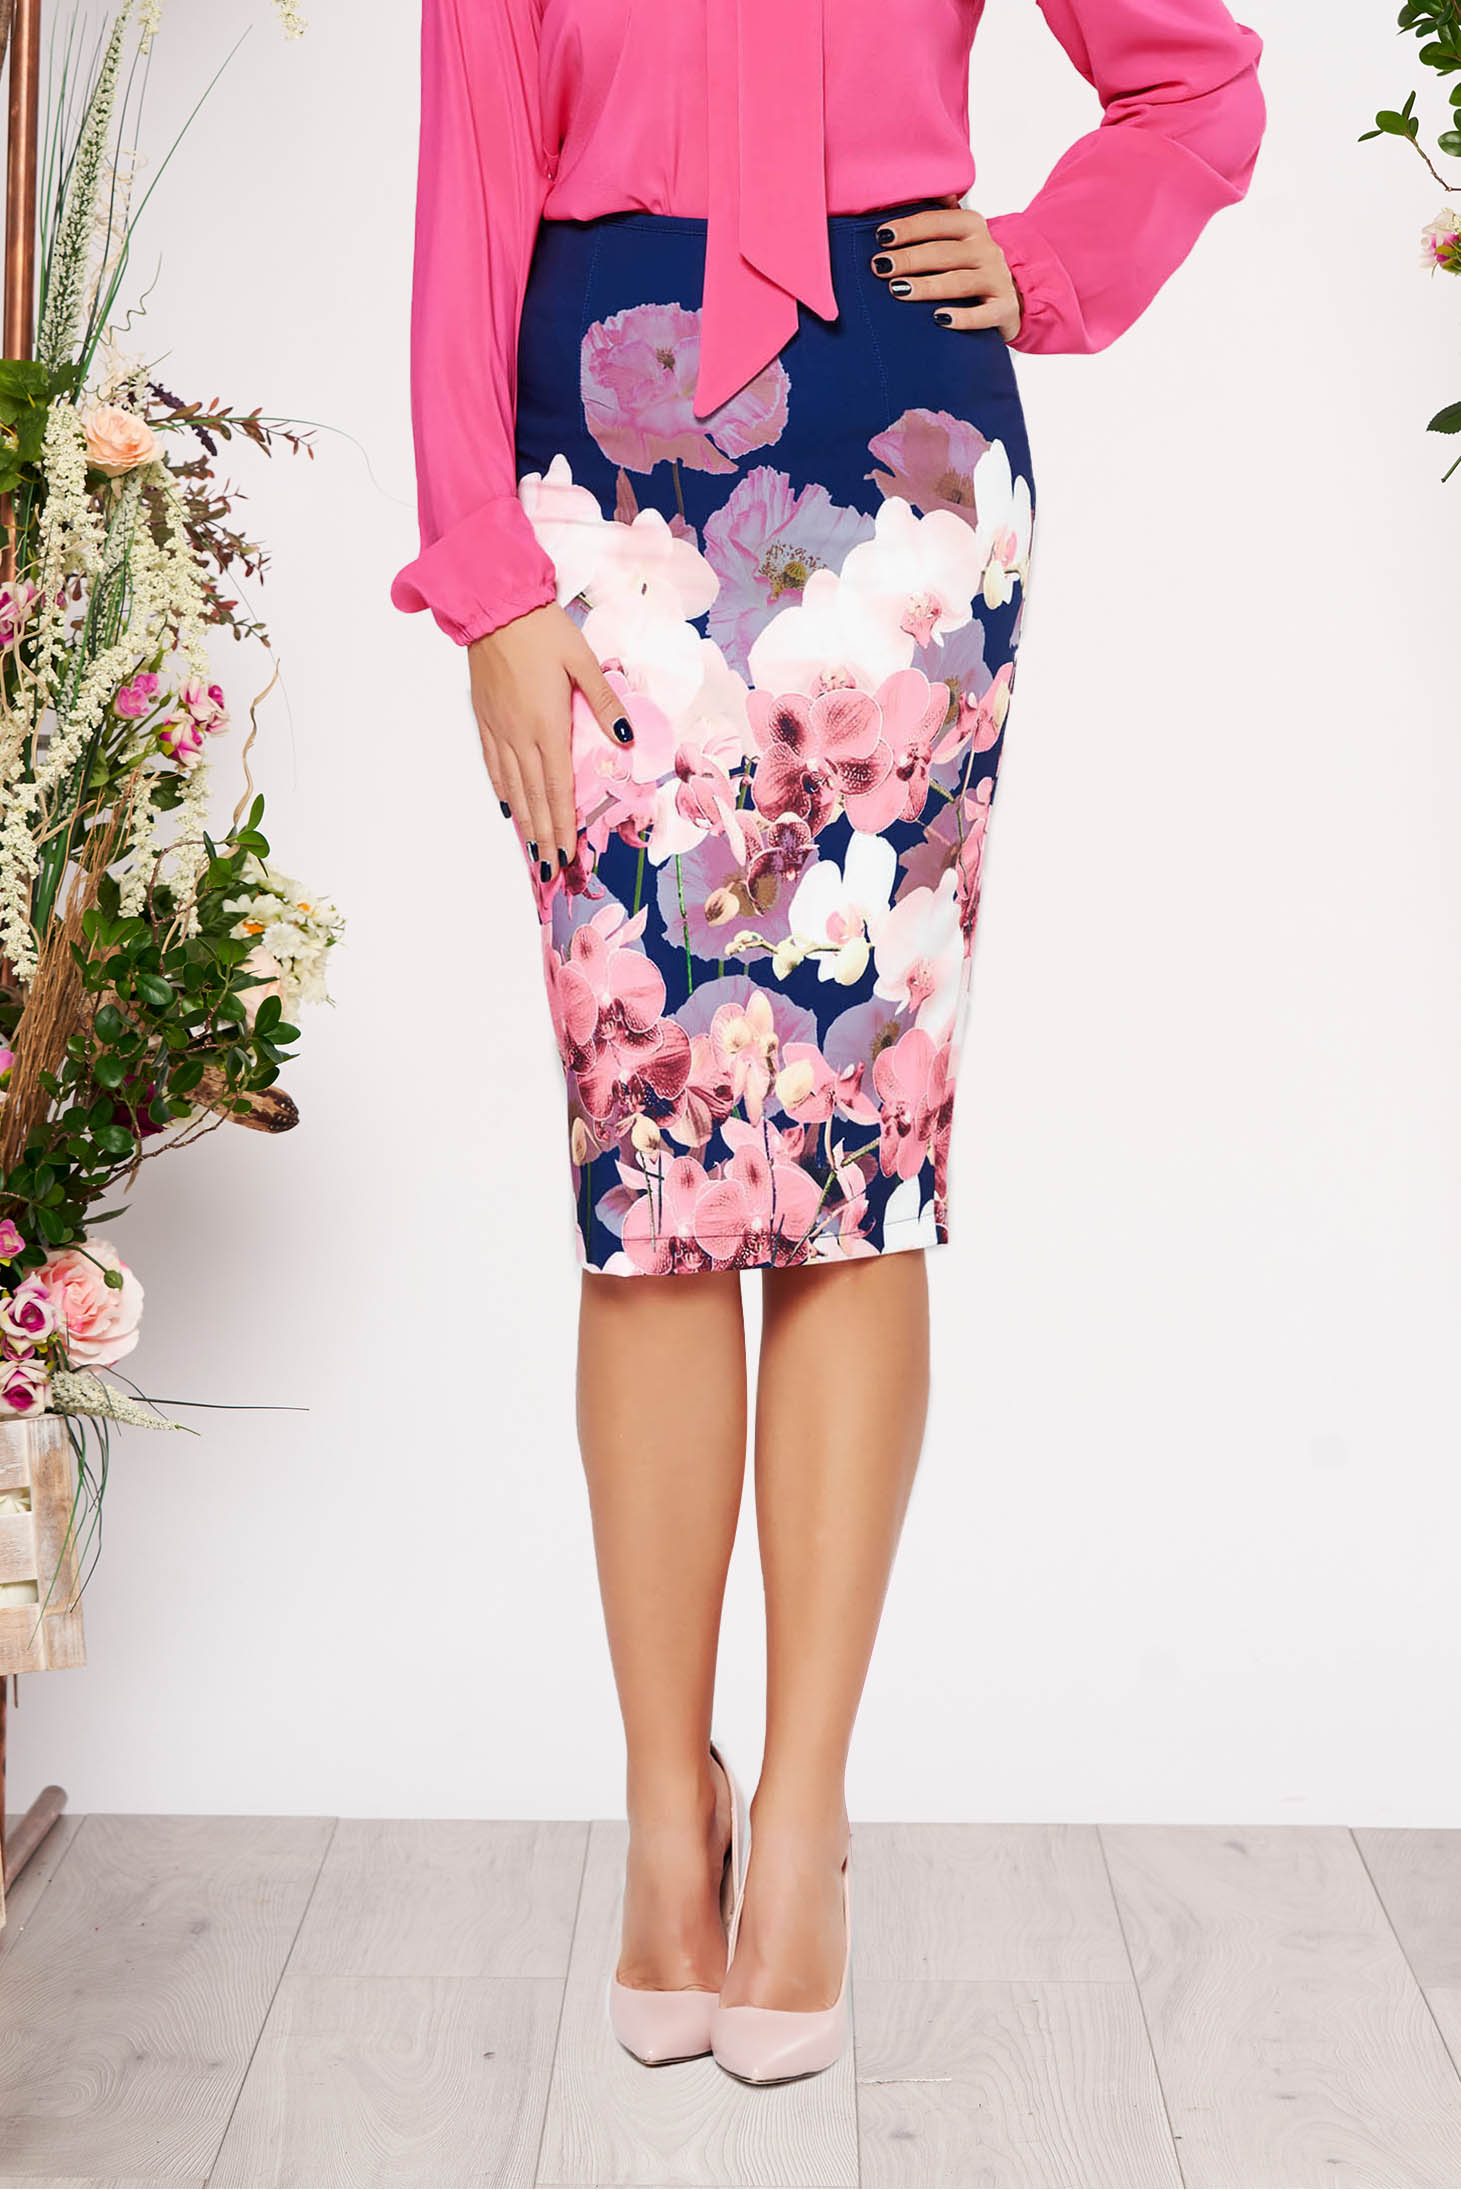 StarShinerS darkblue office midi pencil skirt slightly elastic fabric with floral prints